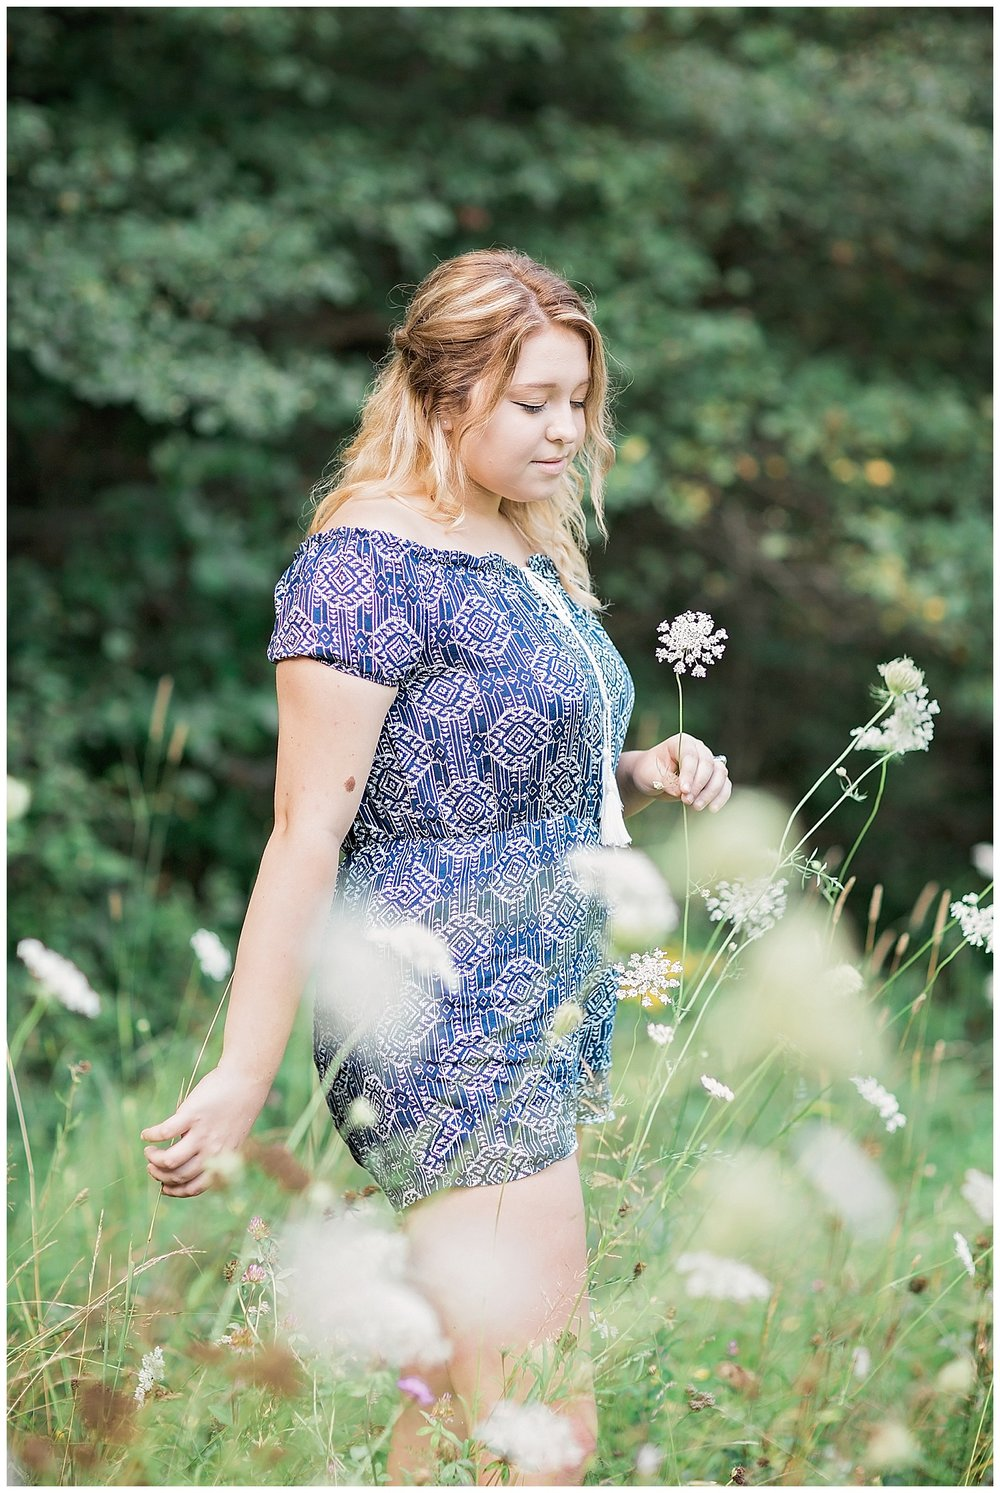 Hannah houghton school -letchworth state park senior session - lass and beau-52_Buffalo wedding photography.jpg